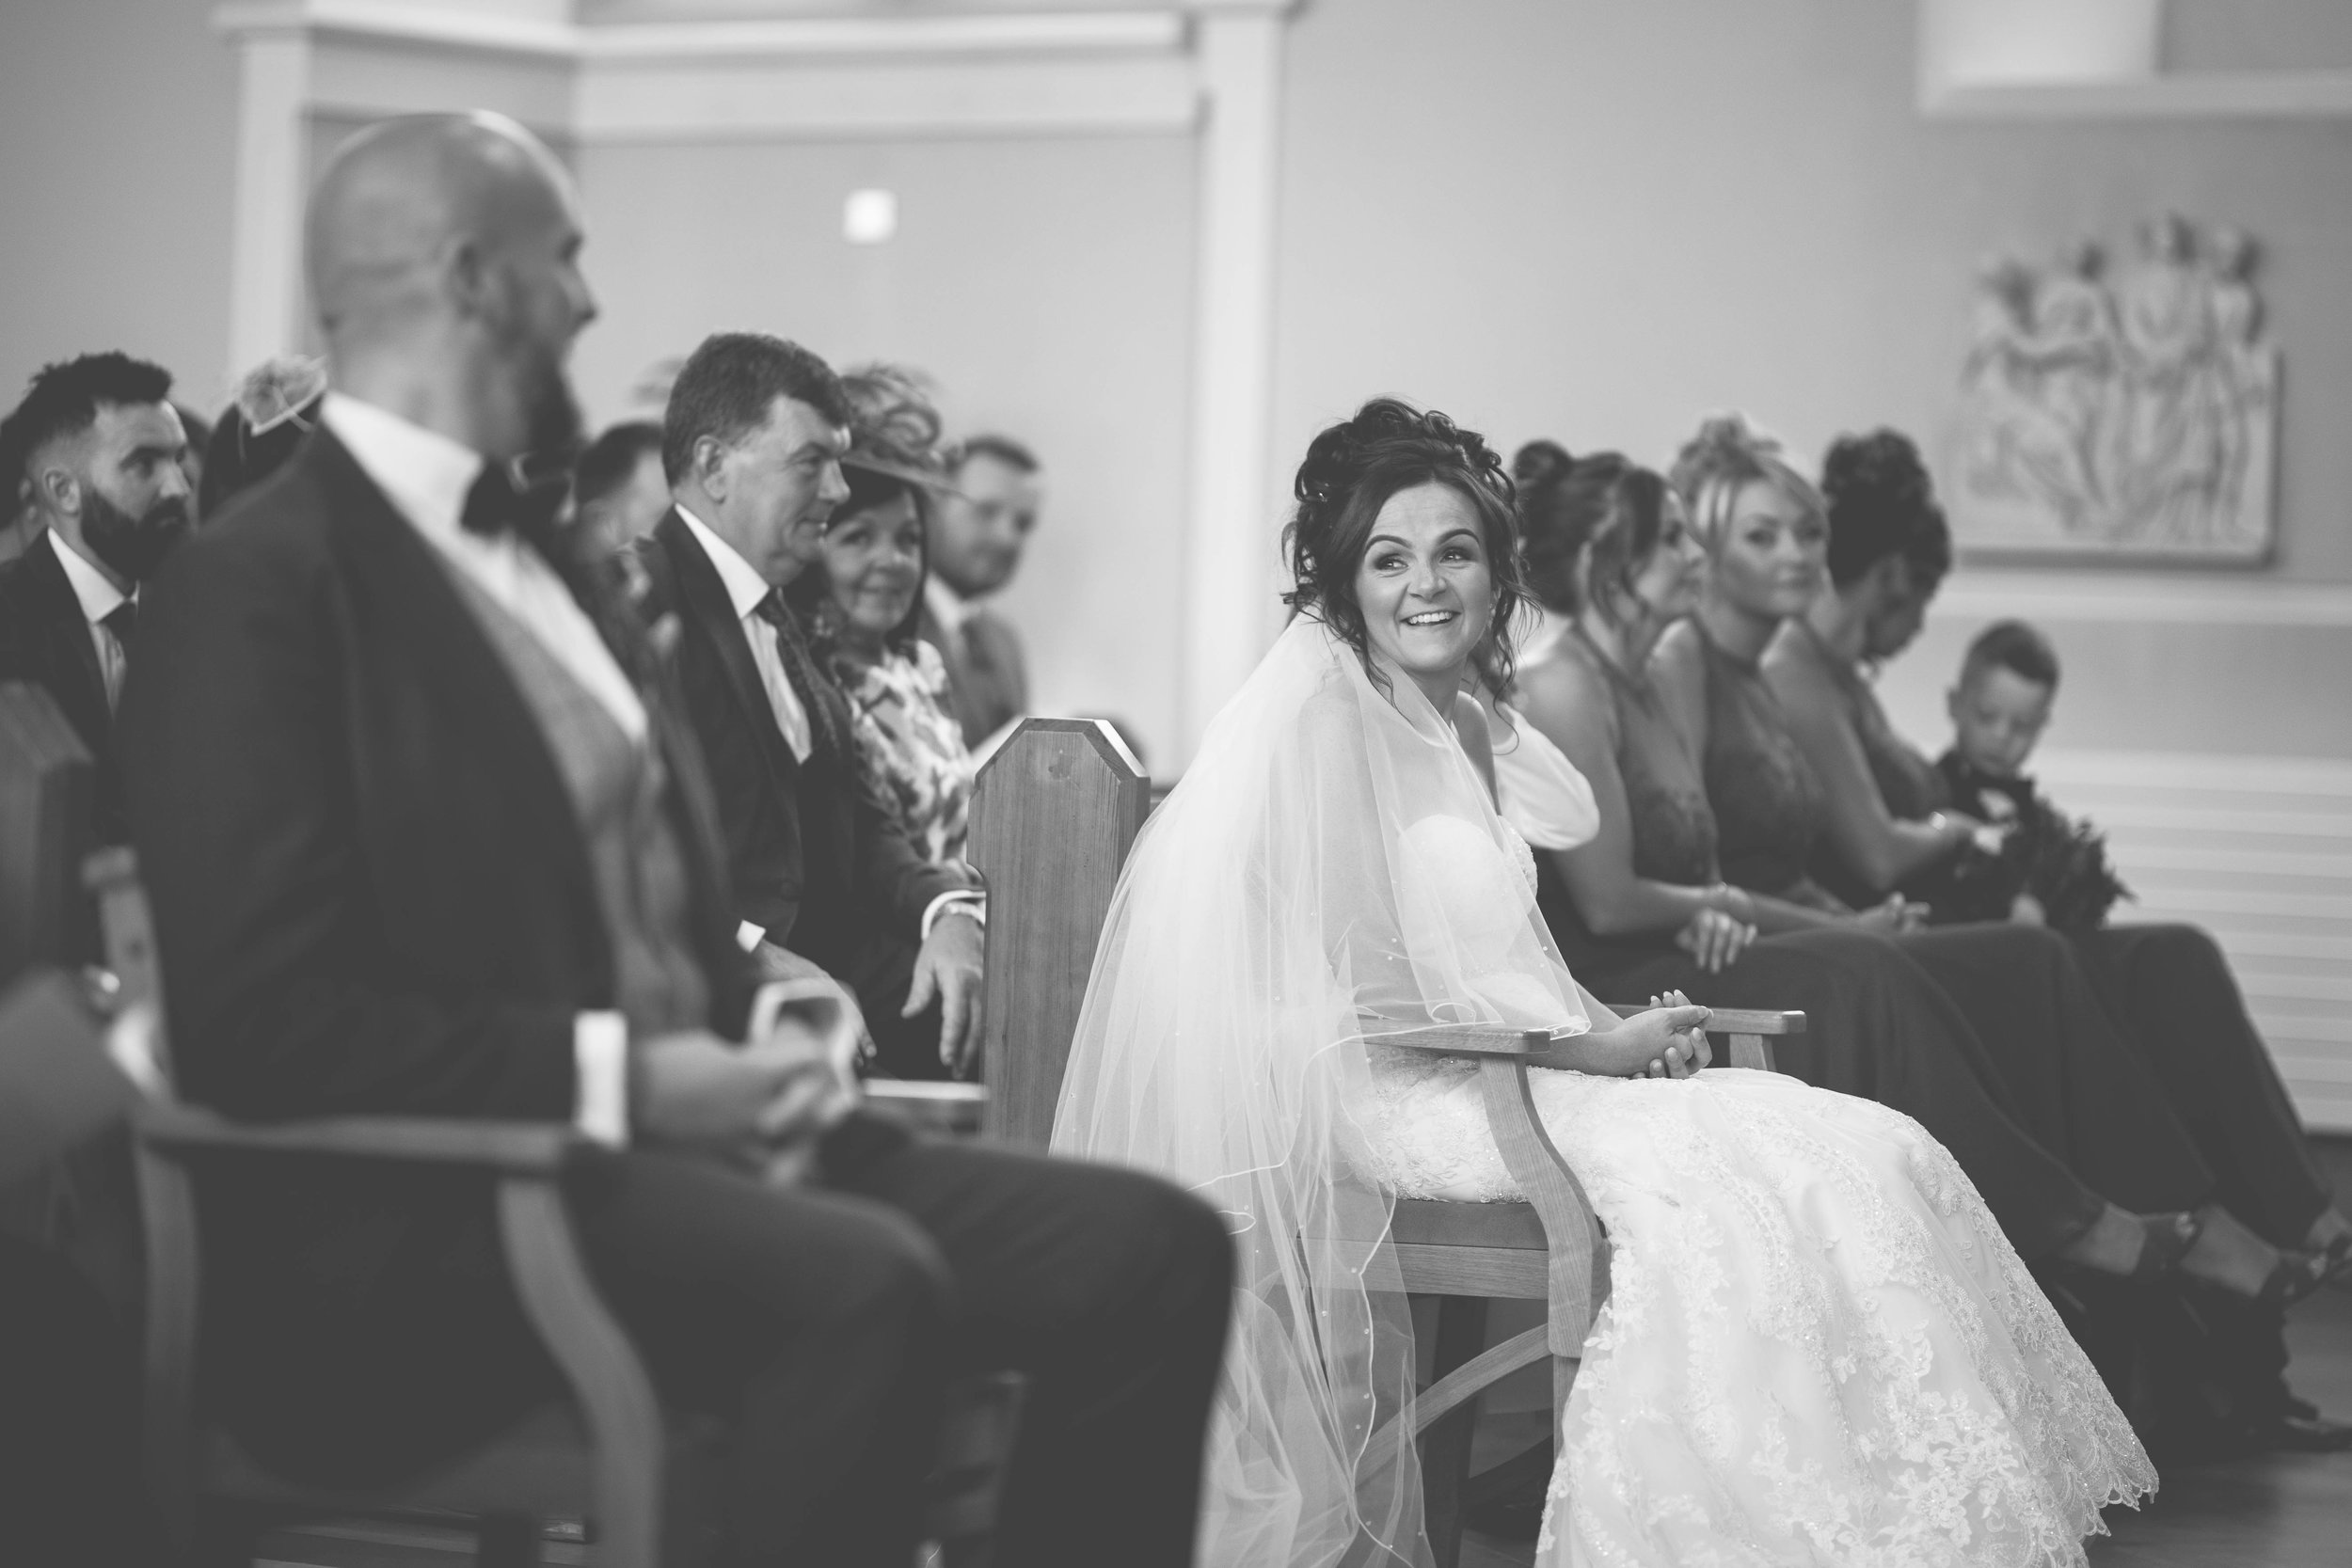 Aisling & Andy - Ceremony-58.jpg